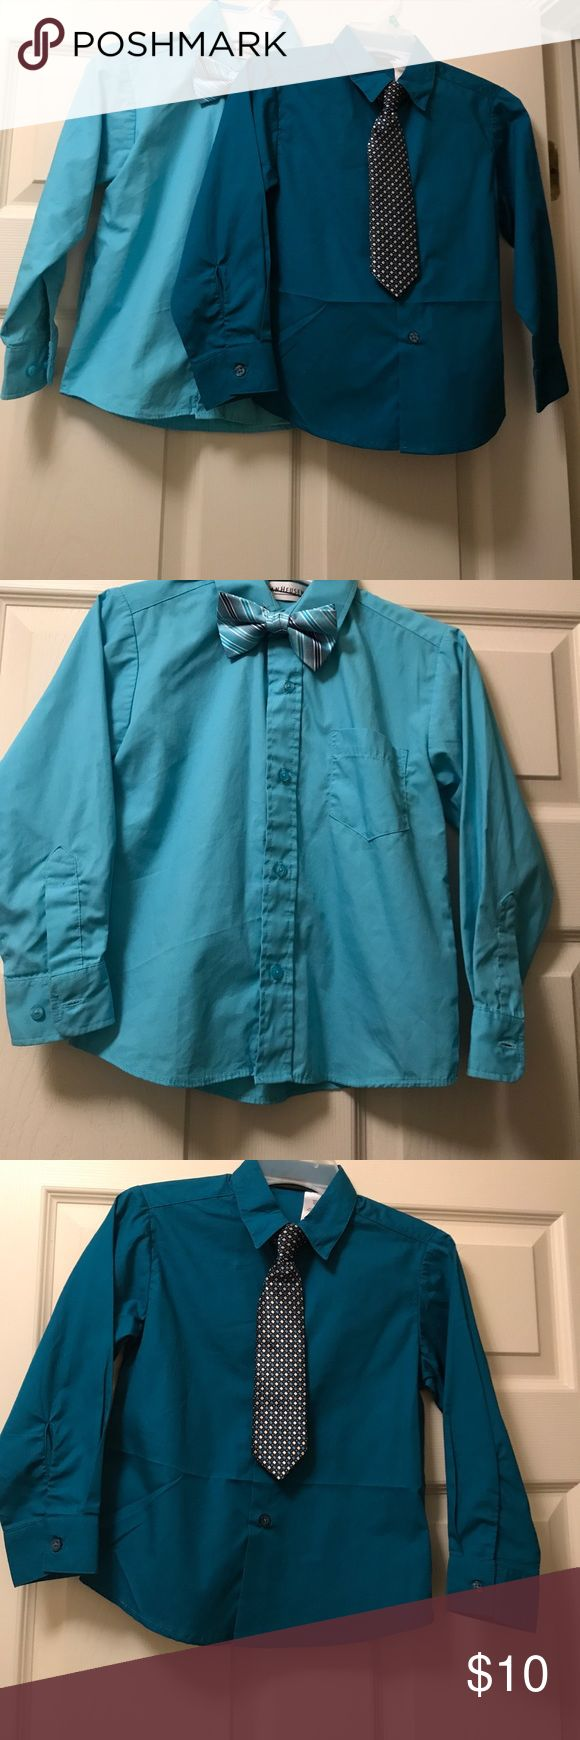 2 like new boys dress shirts with clip on ties Great for a special occasion!2 like new boys dress shirts both size 7.light blue is Van Heiden with bow tie and dark blue is holiday editions with clip on tie. Only used once each Van Heusen Shirts & Tops Button Down Shirts